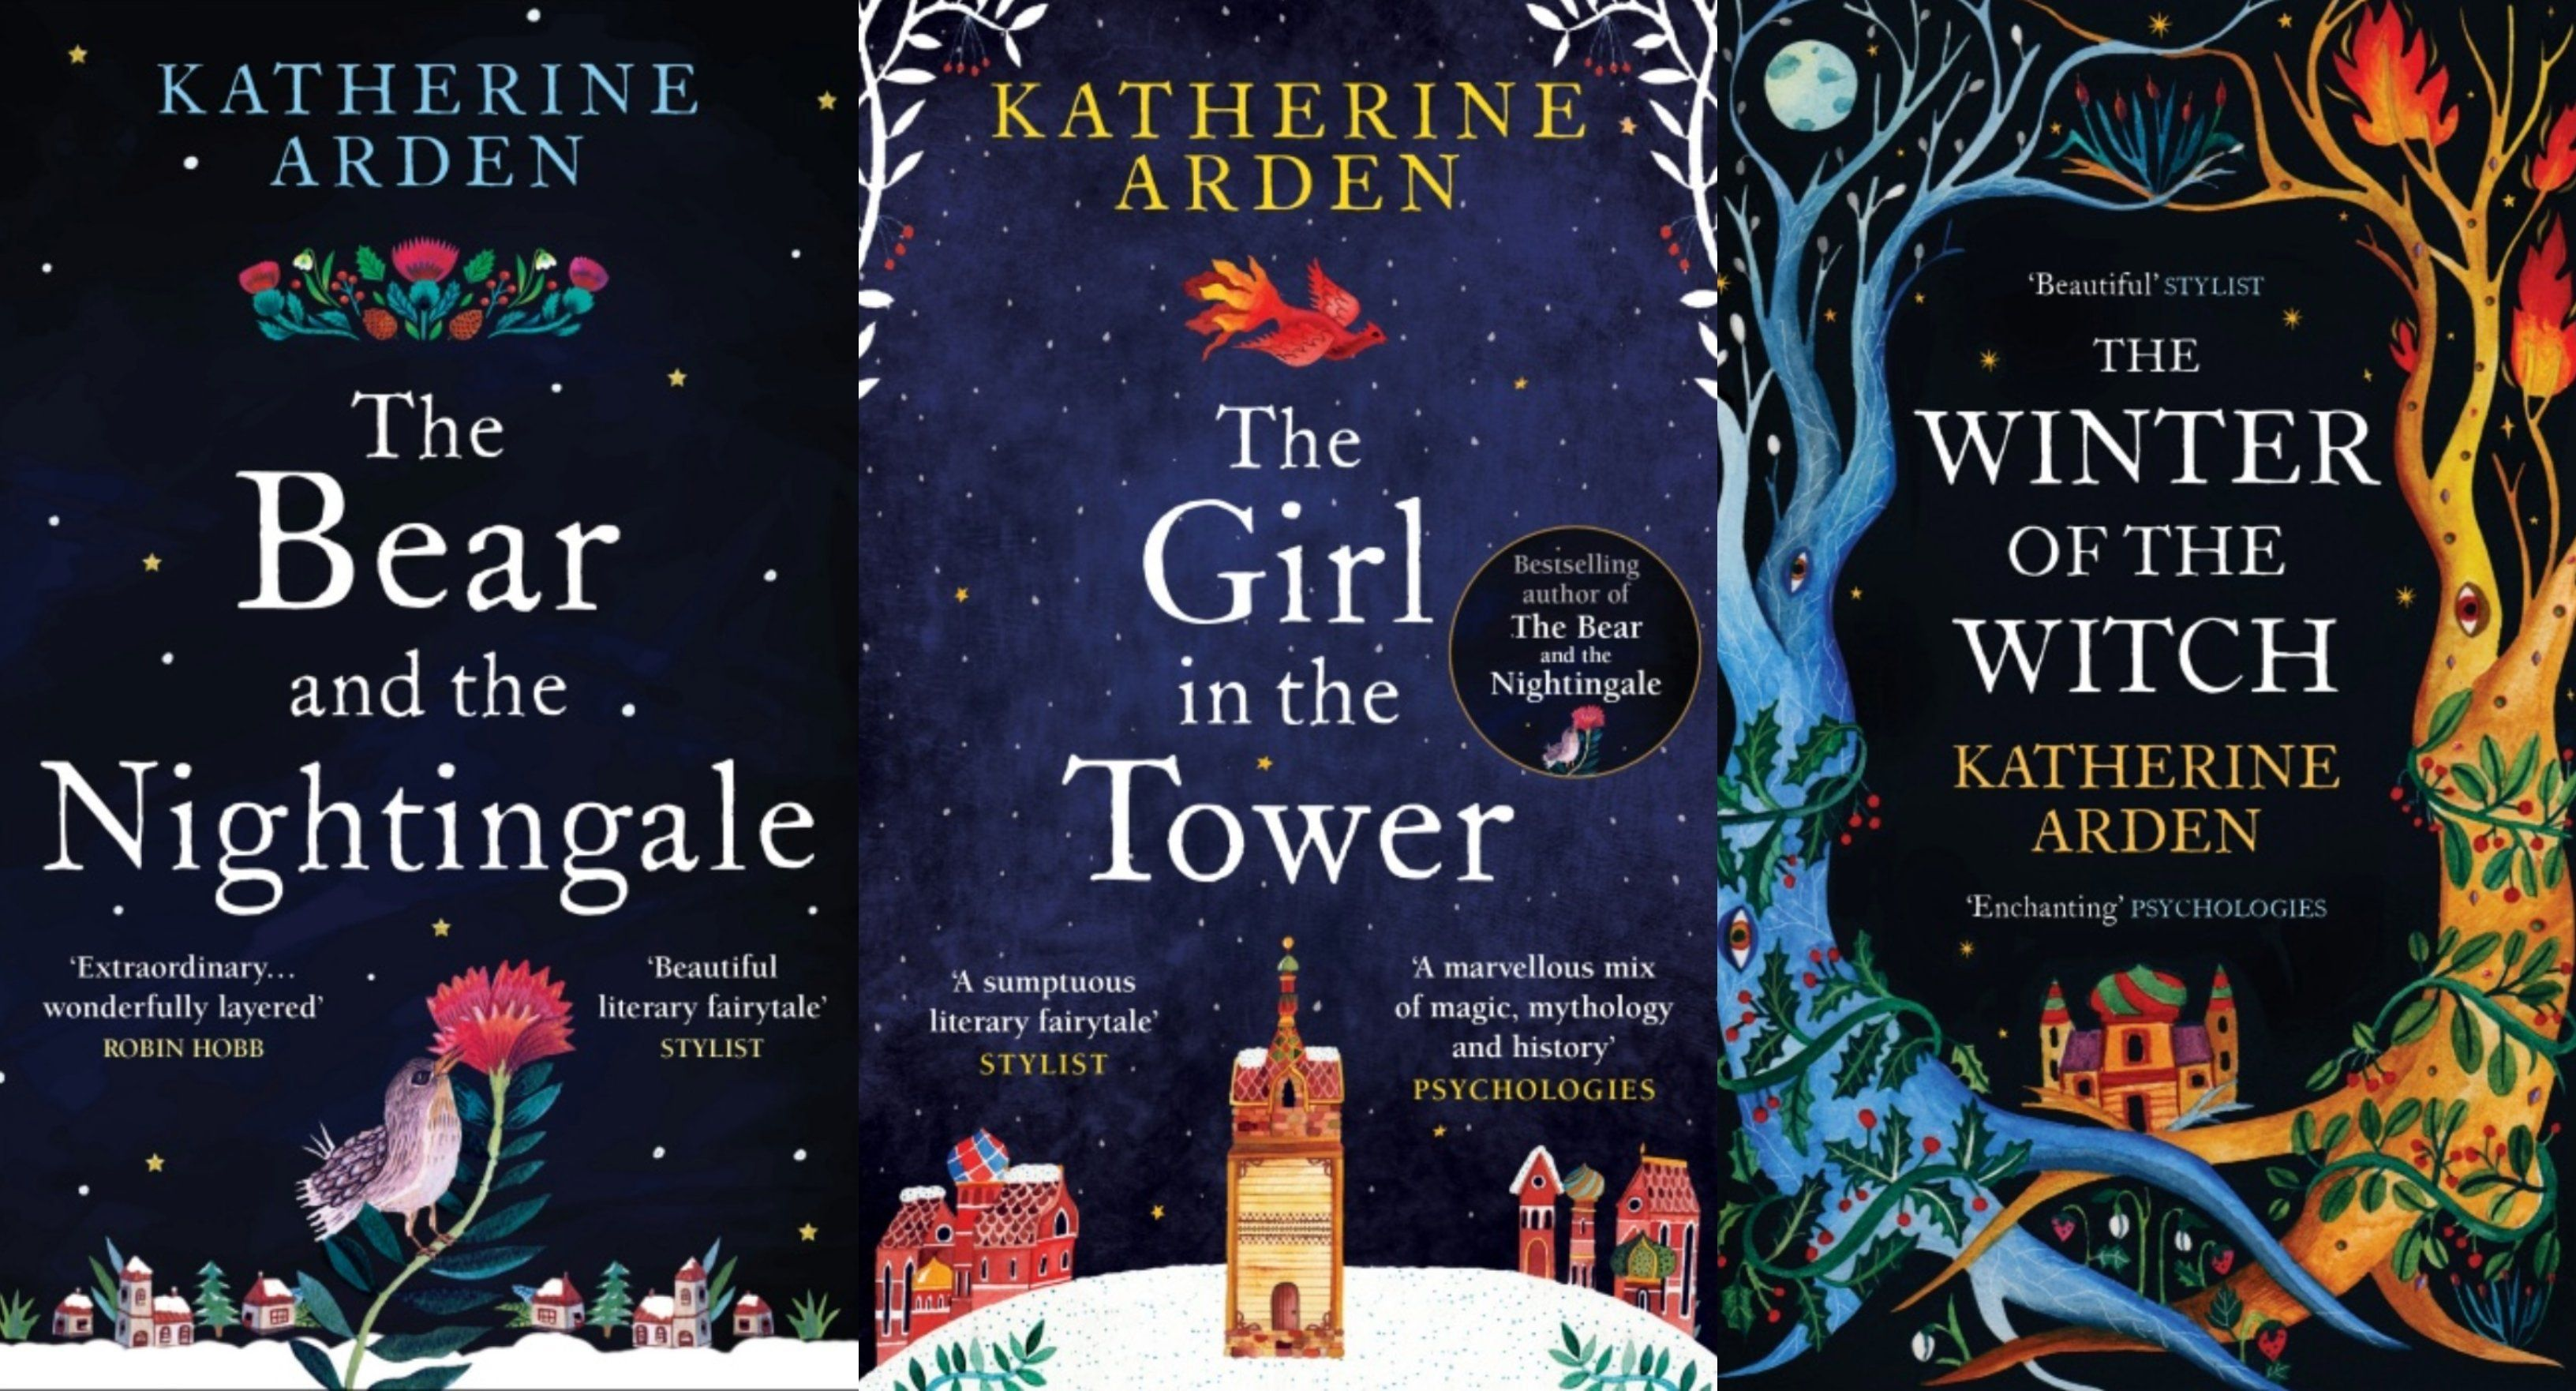 Katherine Arden's 'Winternight' Trilogy Is A Heady Mix Of Politics, Spirits & Wars In Old